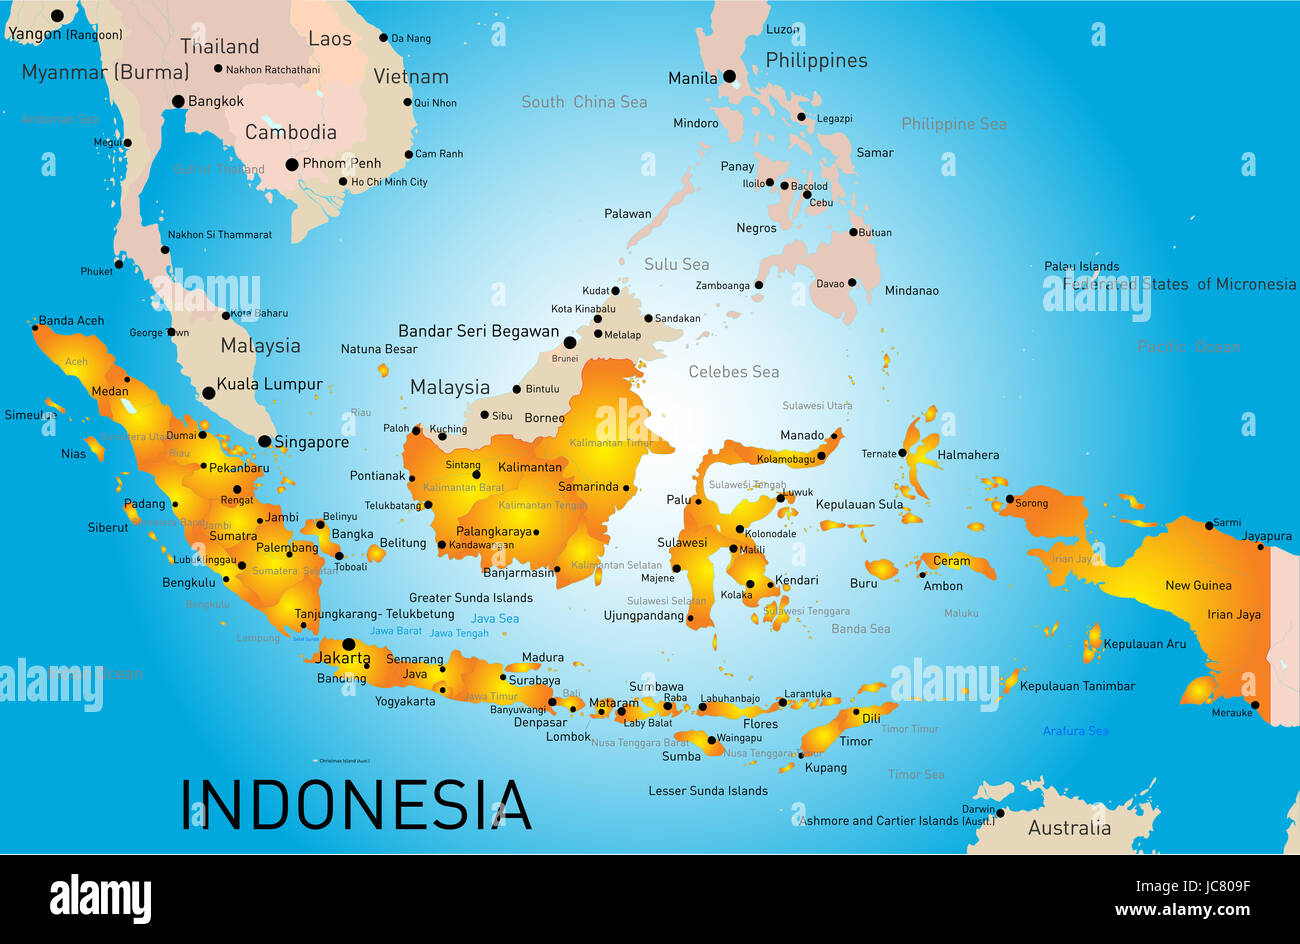 Indonesia country vector color map Stock Photo